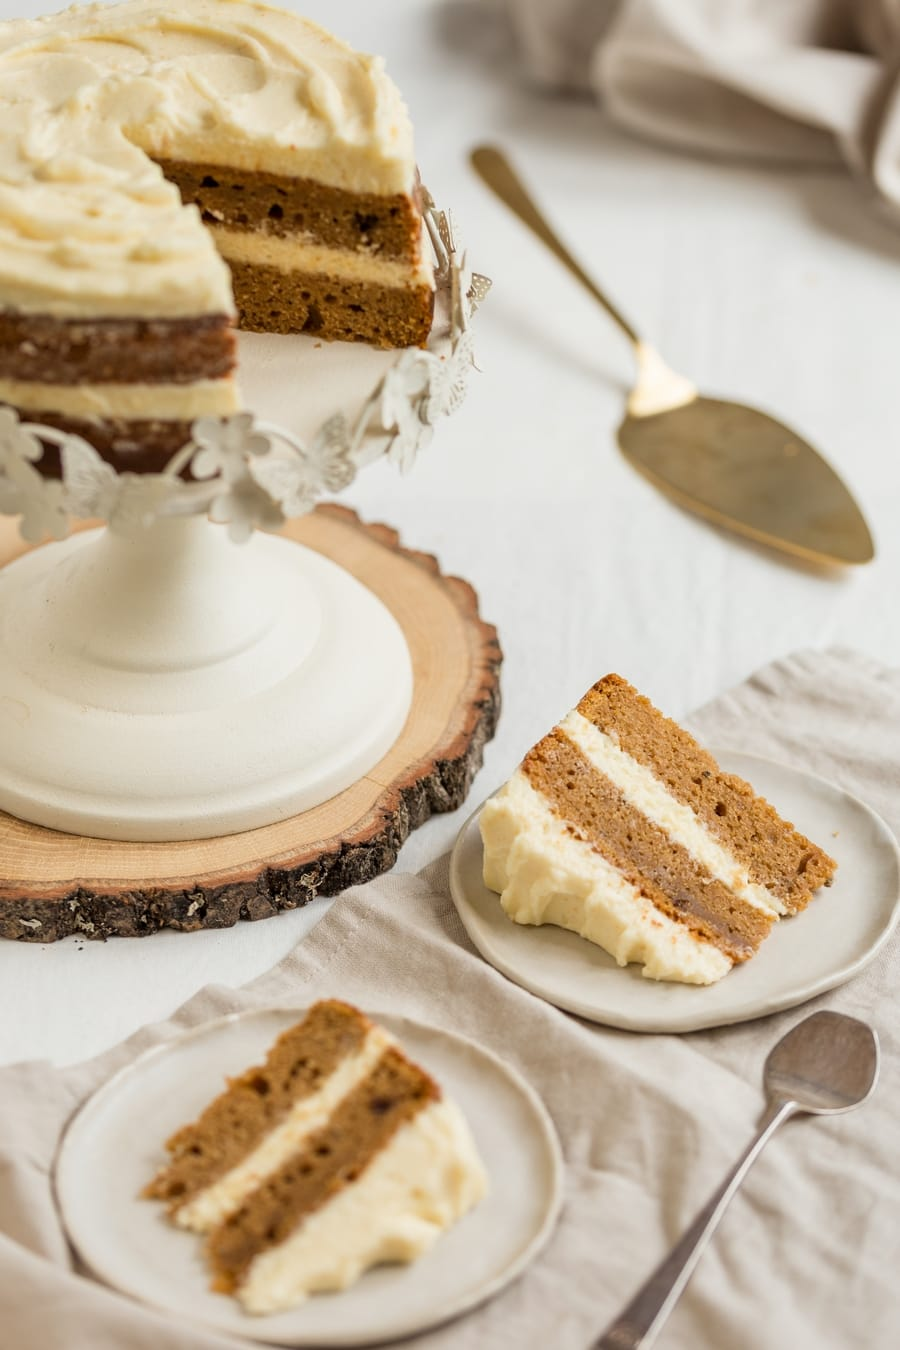 Sliced frosted cake, plated slices on the side.